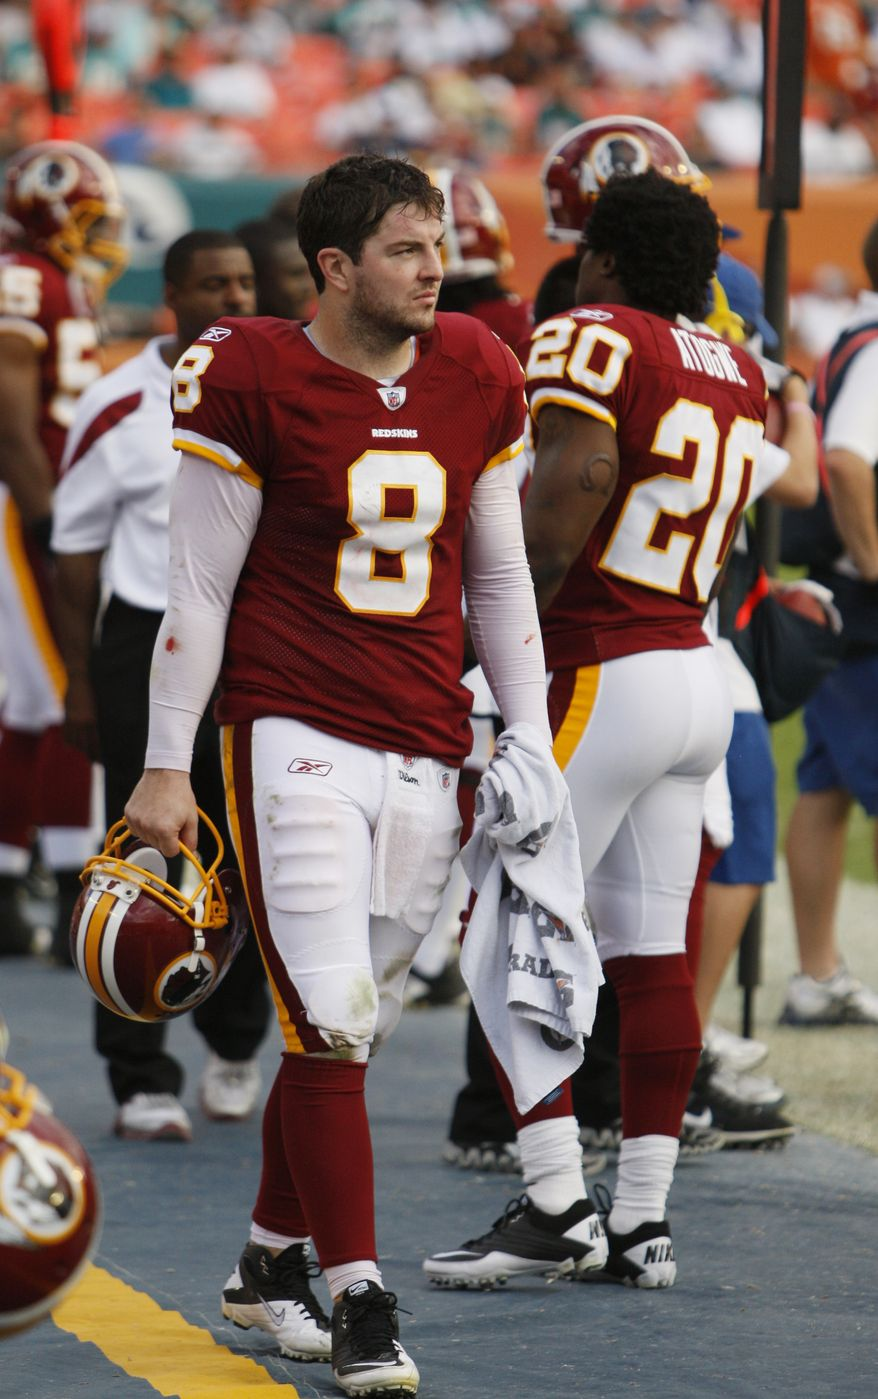 Washington Redskins quarterback Rex Grossman is shown on the sidelines during the second half  against the Miami Dolphins, Sunday, Nov. 13, 2011, in Miami. The Dolphins defeated the Redskins 20-9. (AP Photo/Wilfredo Lee)